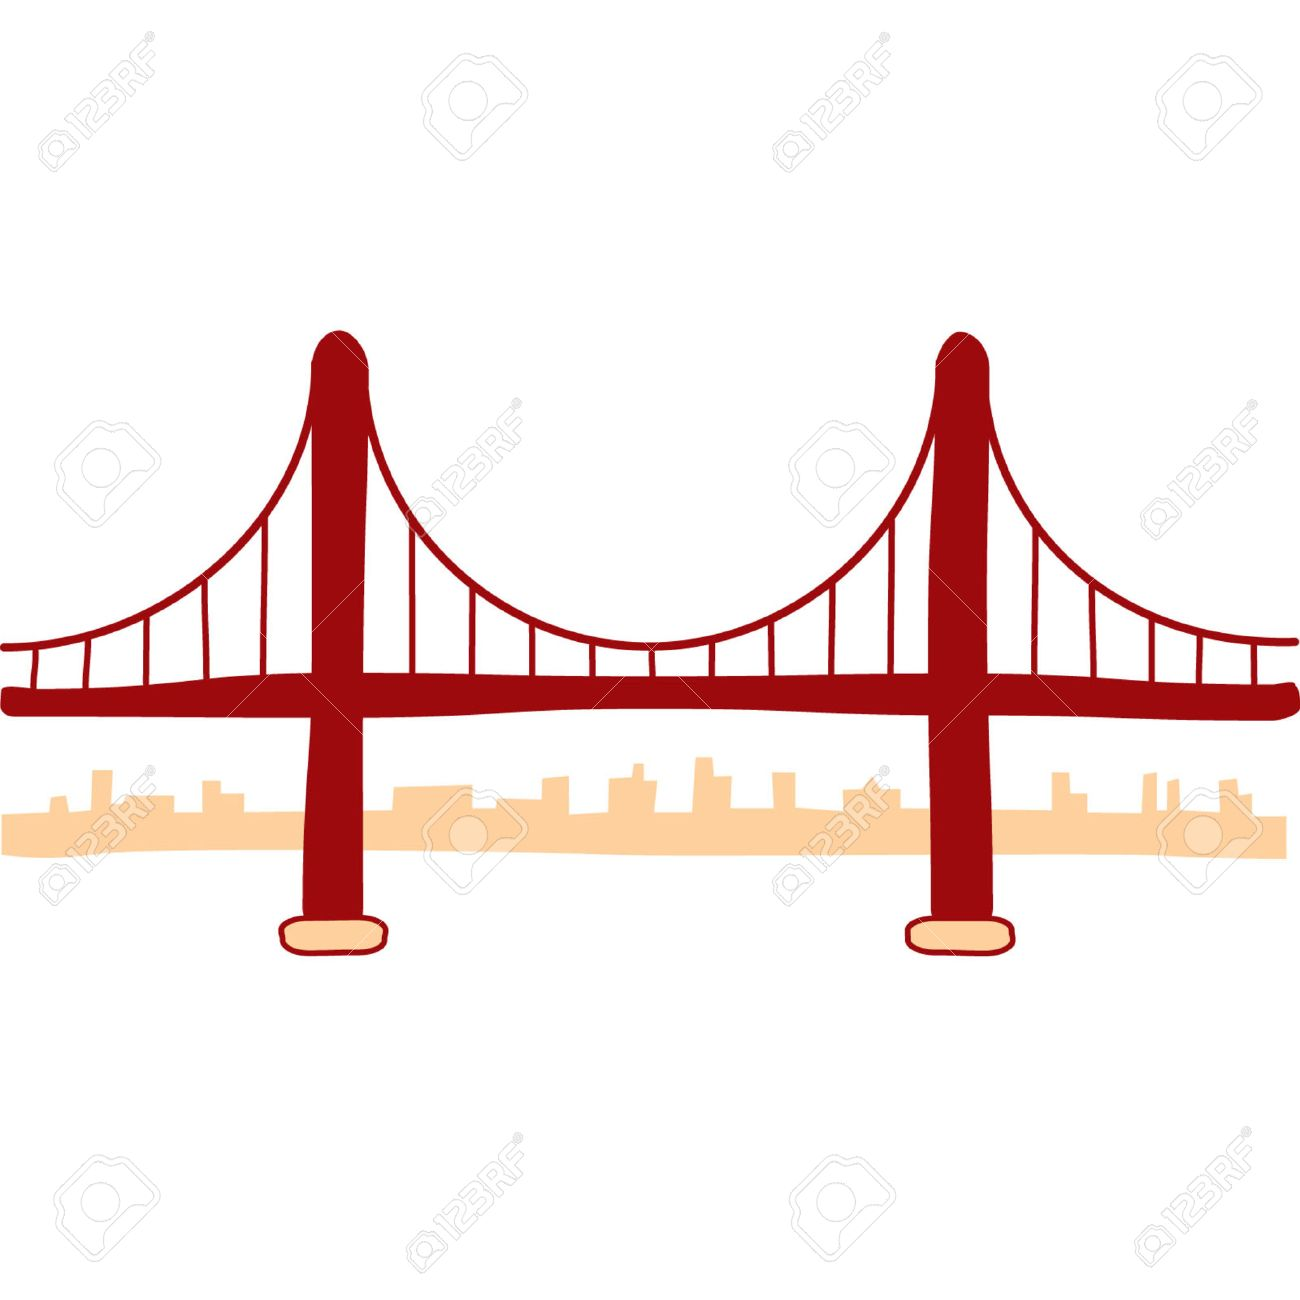 golden gate bridge illustration royalty free cliparts vectors and rh 123rf com  golden gate bridge icon clipart